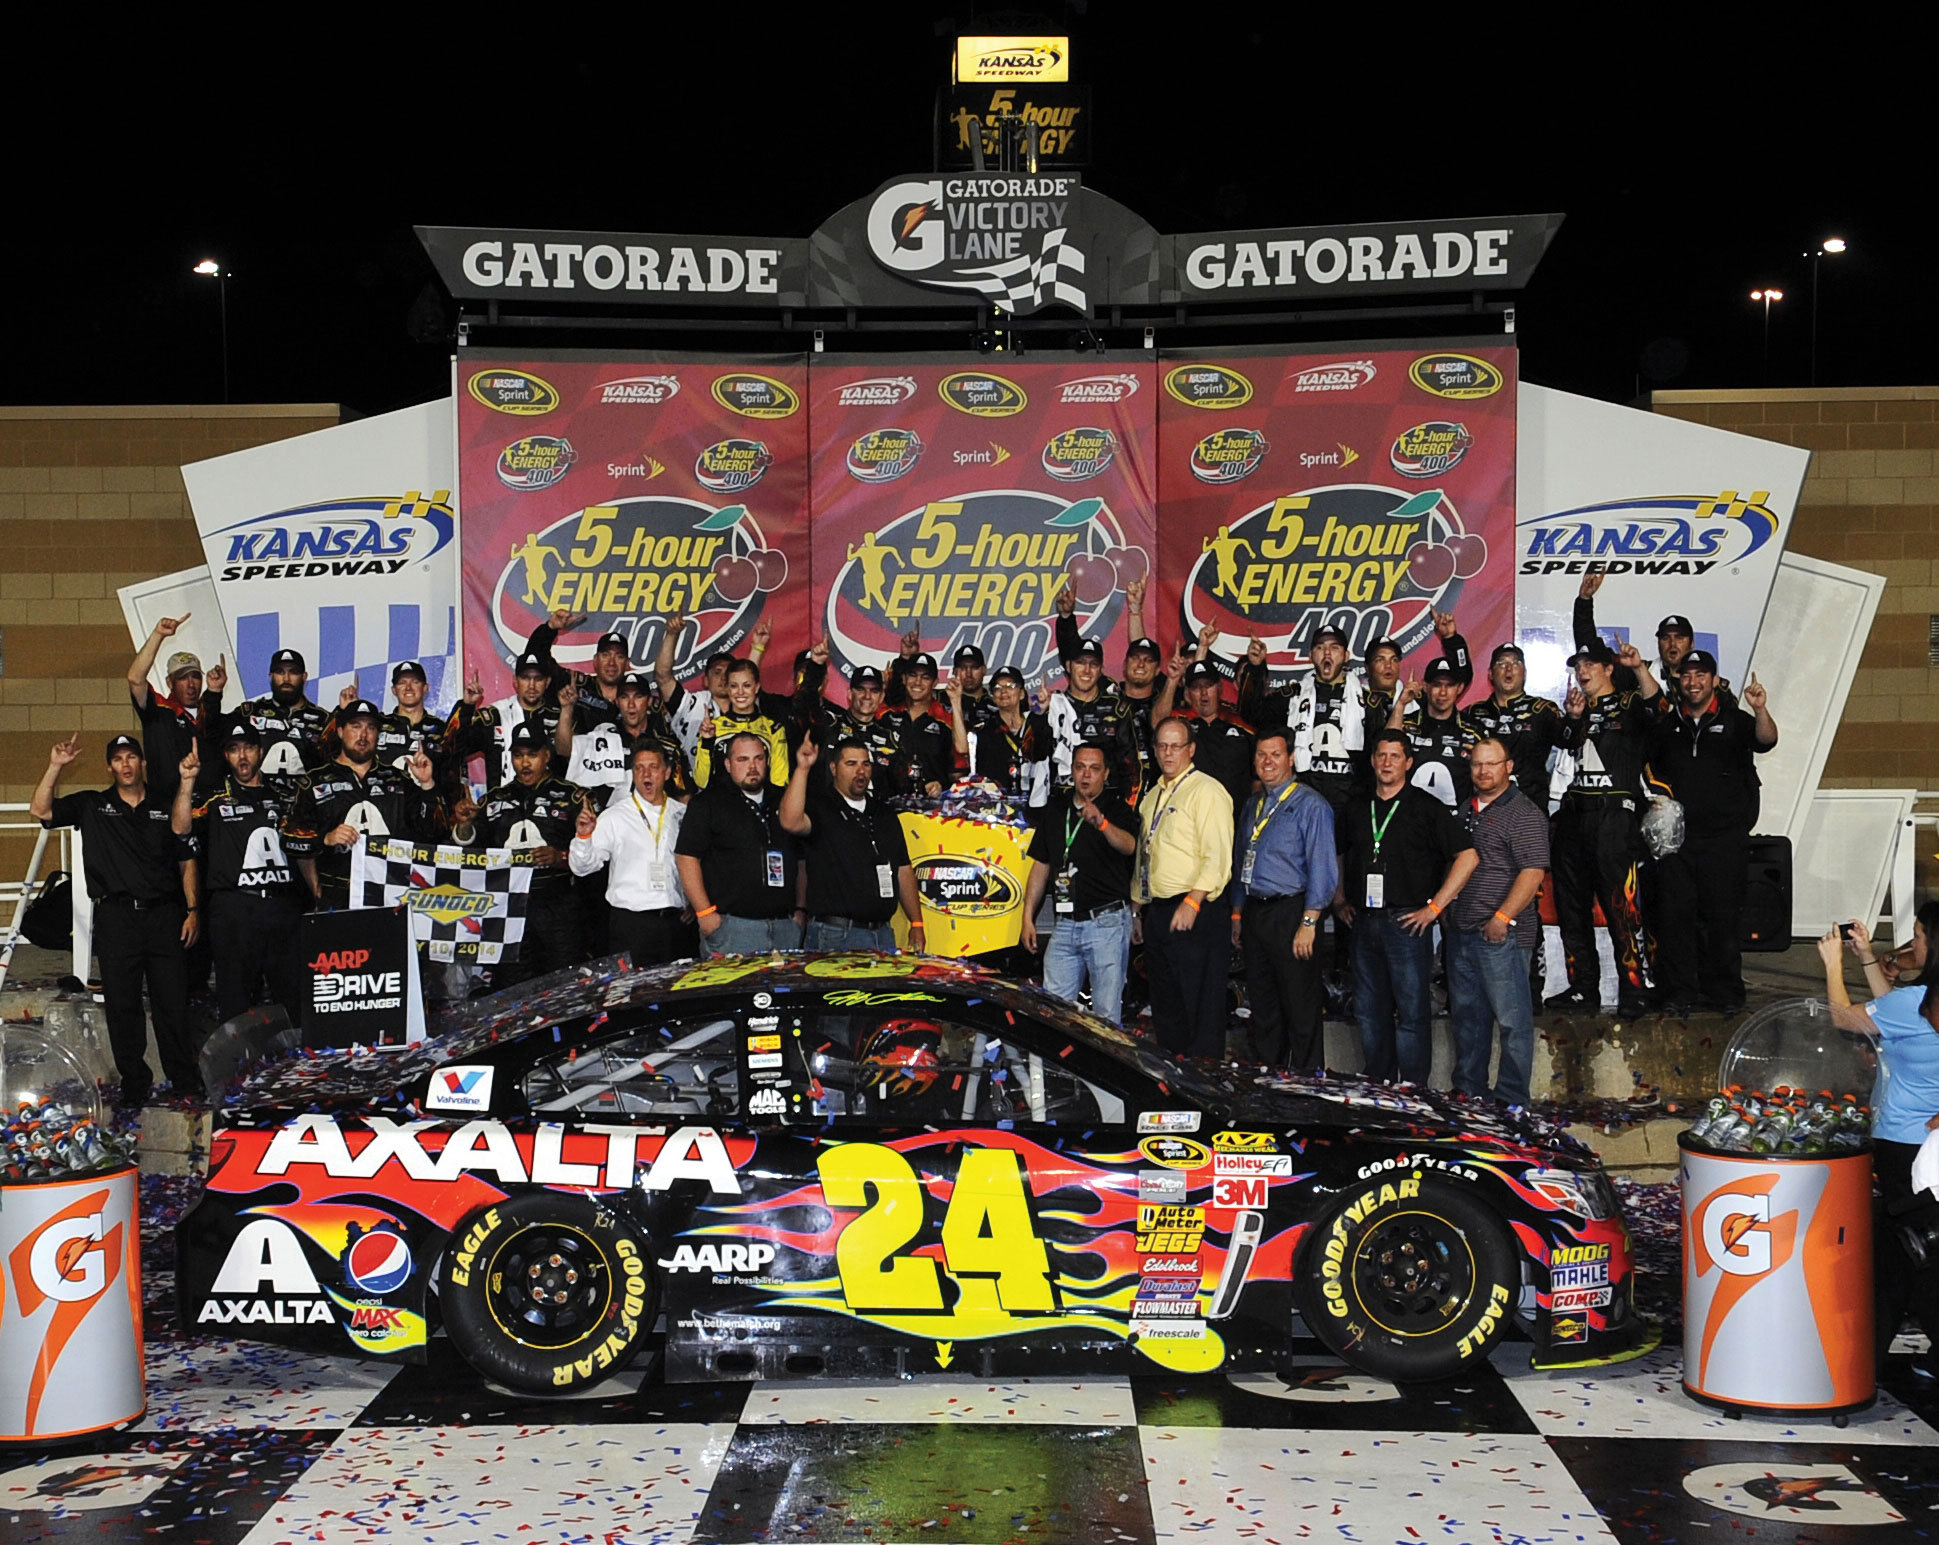 Axalta's Brilliant Flames No. 24 Chevrolet SS in Victory Lane at Kansas Speedway. (Photo: Business Wire)